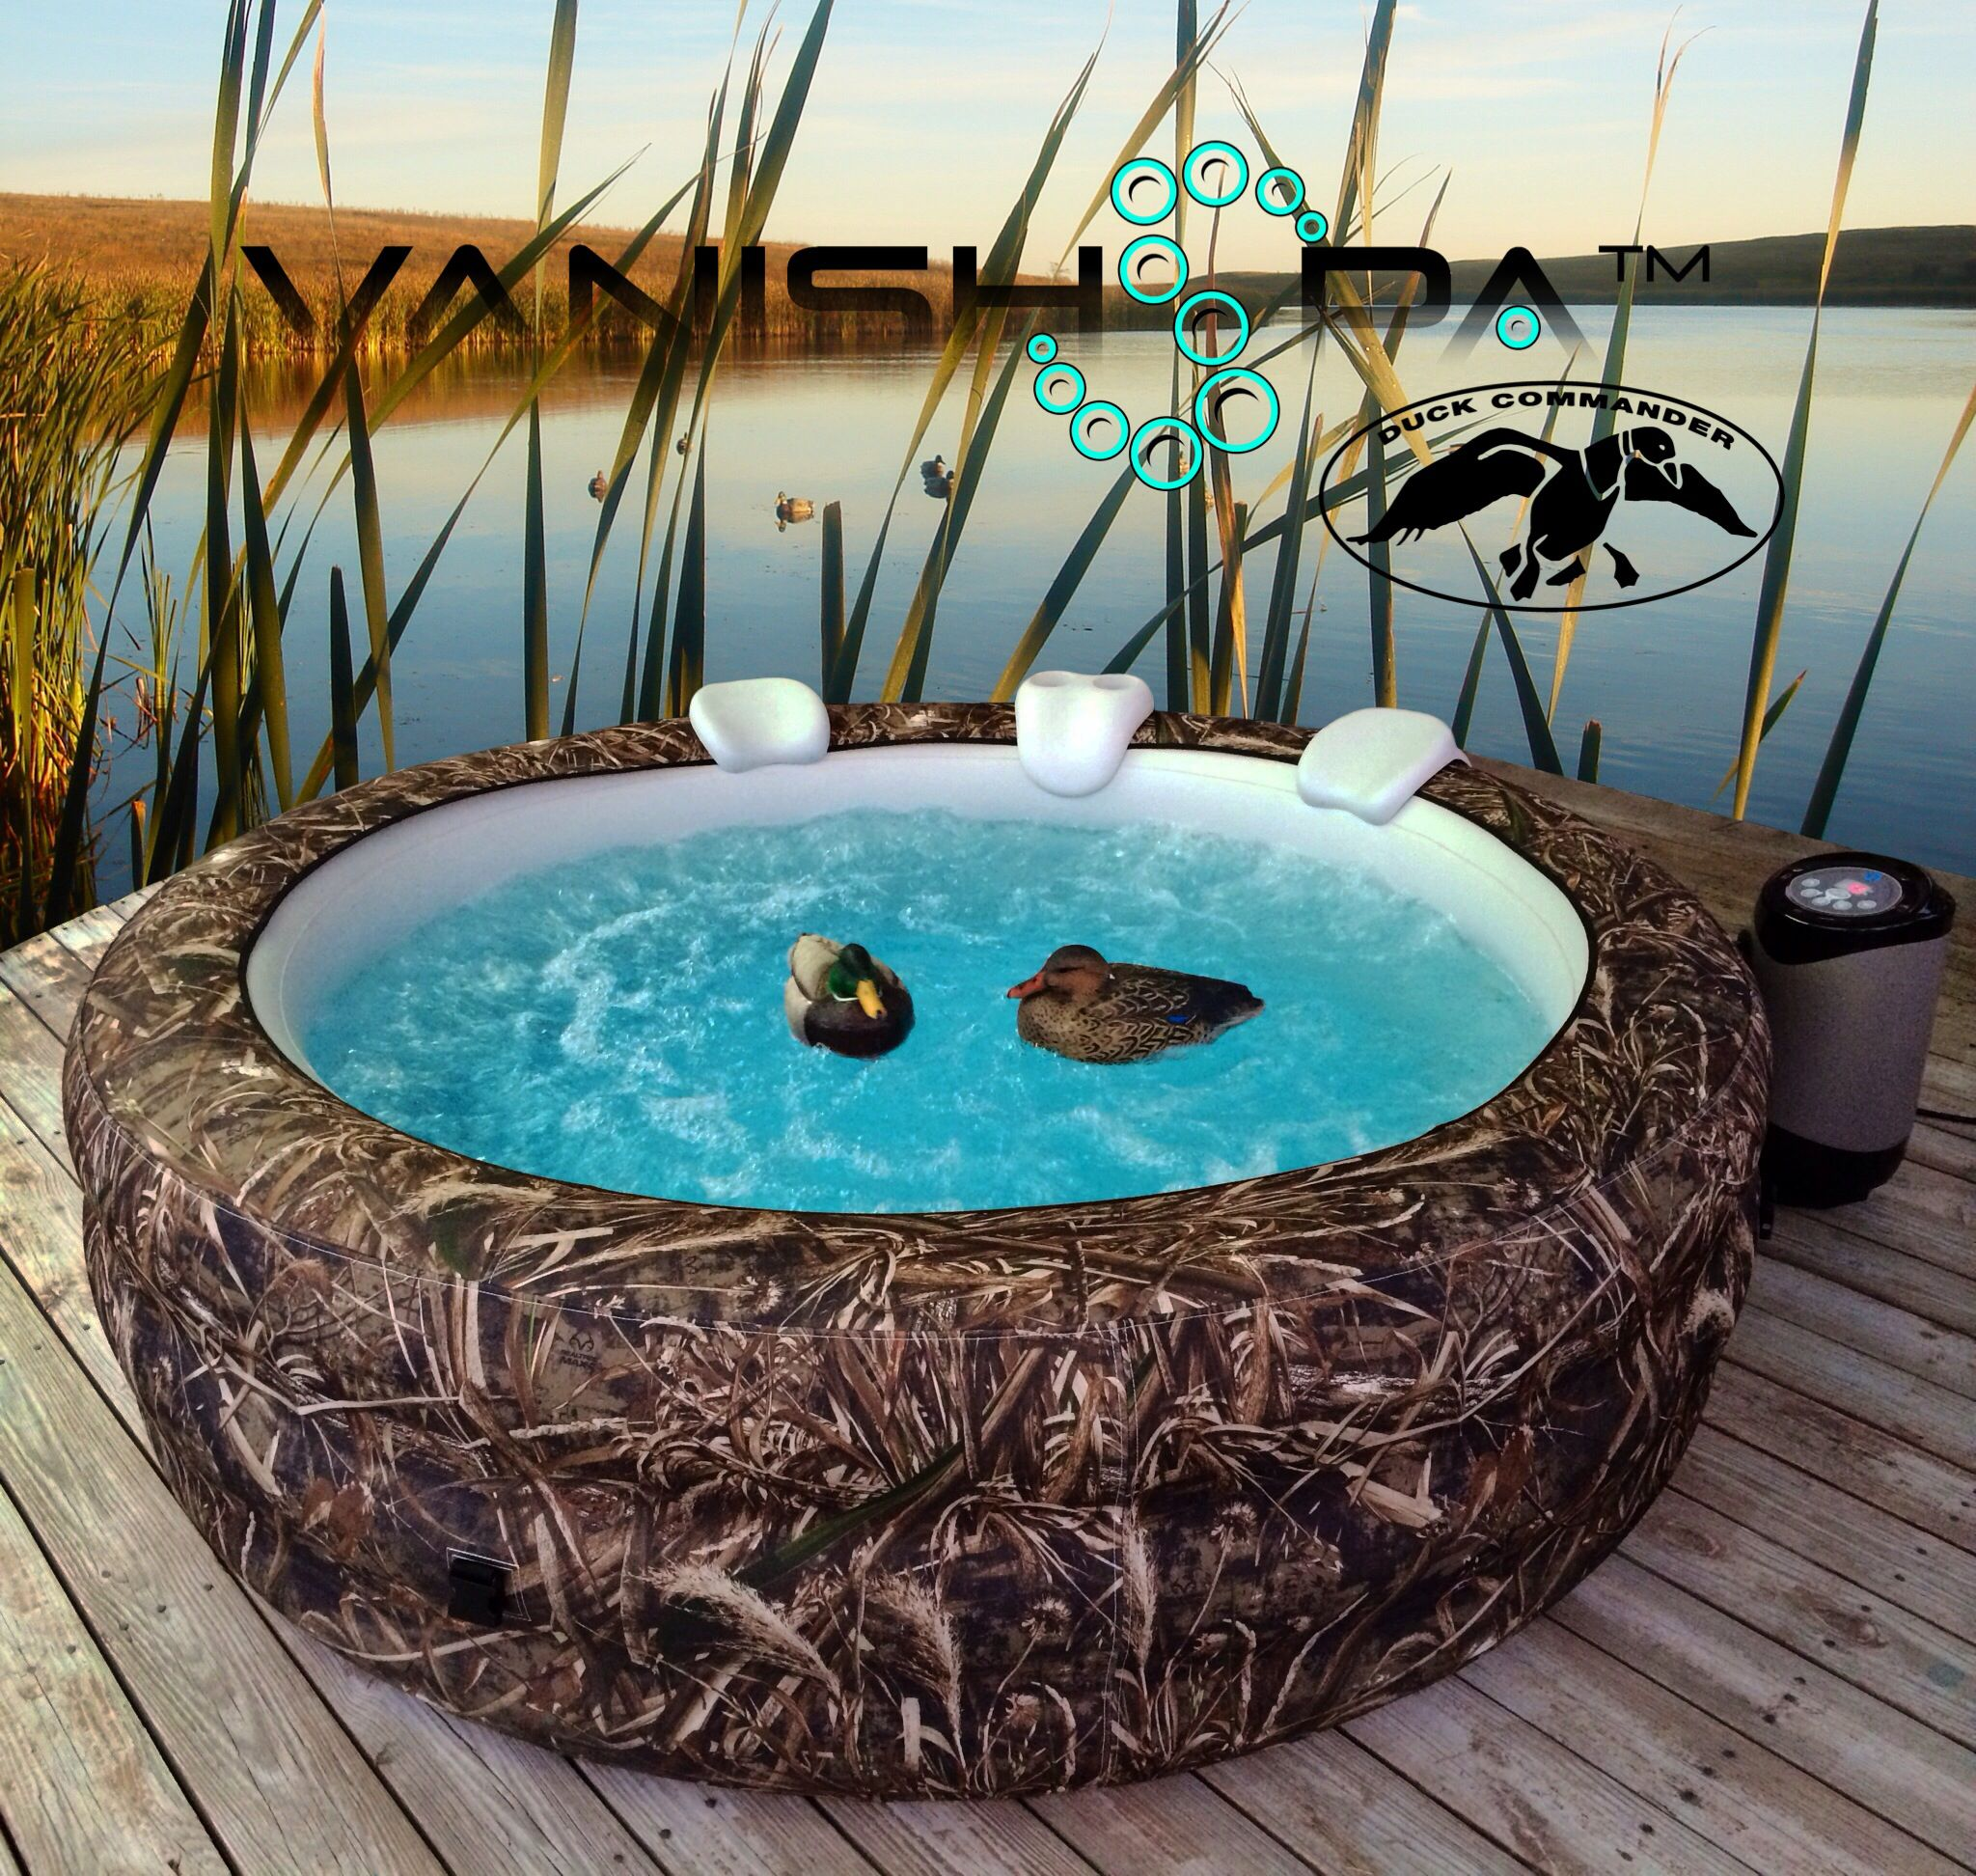 Vanish Spa: Realtree Max-5 Camouflage portable hot tub Vanishspa.com ...